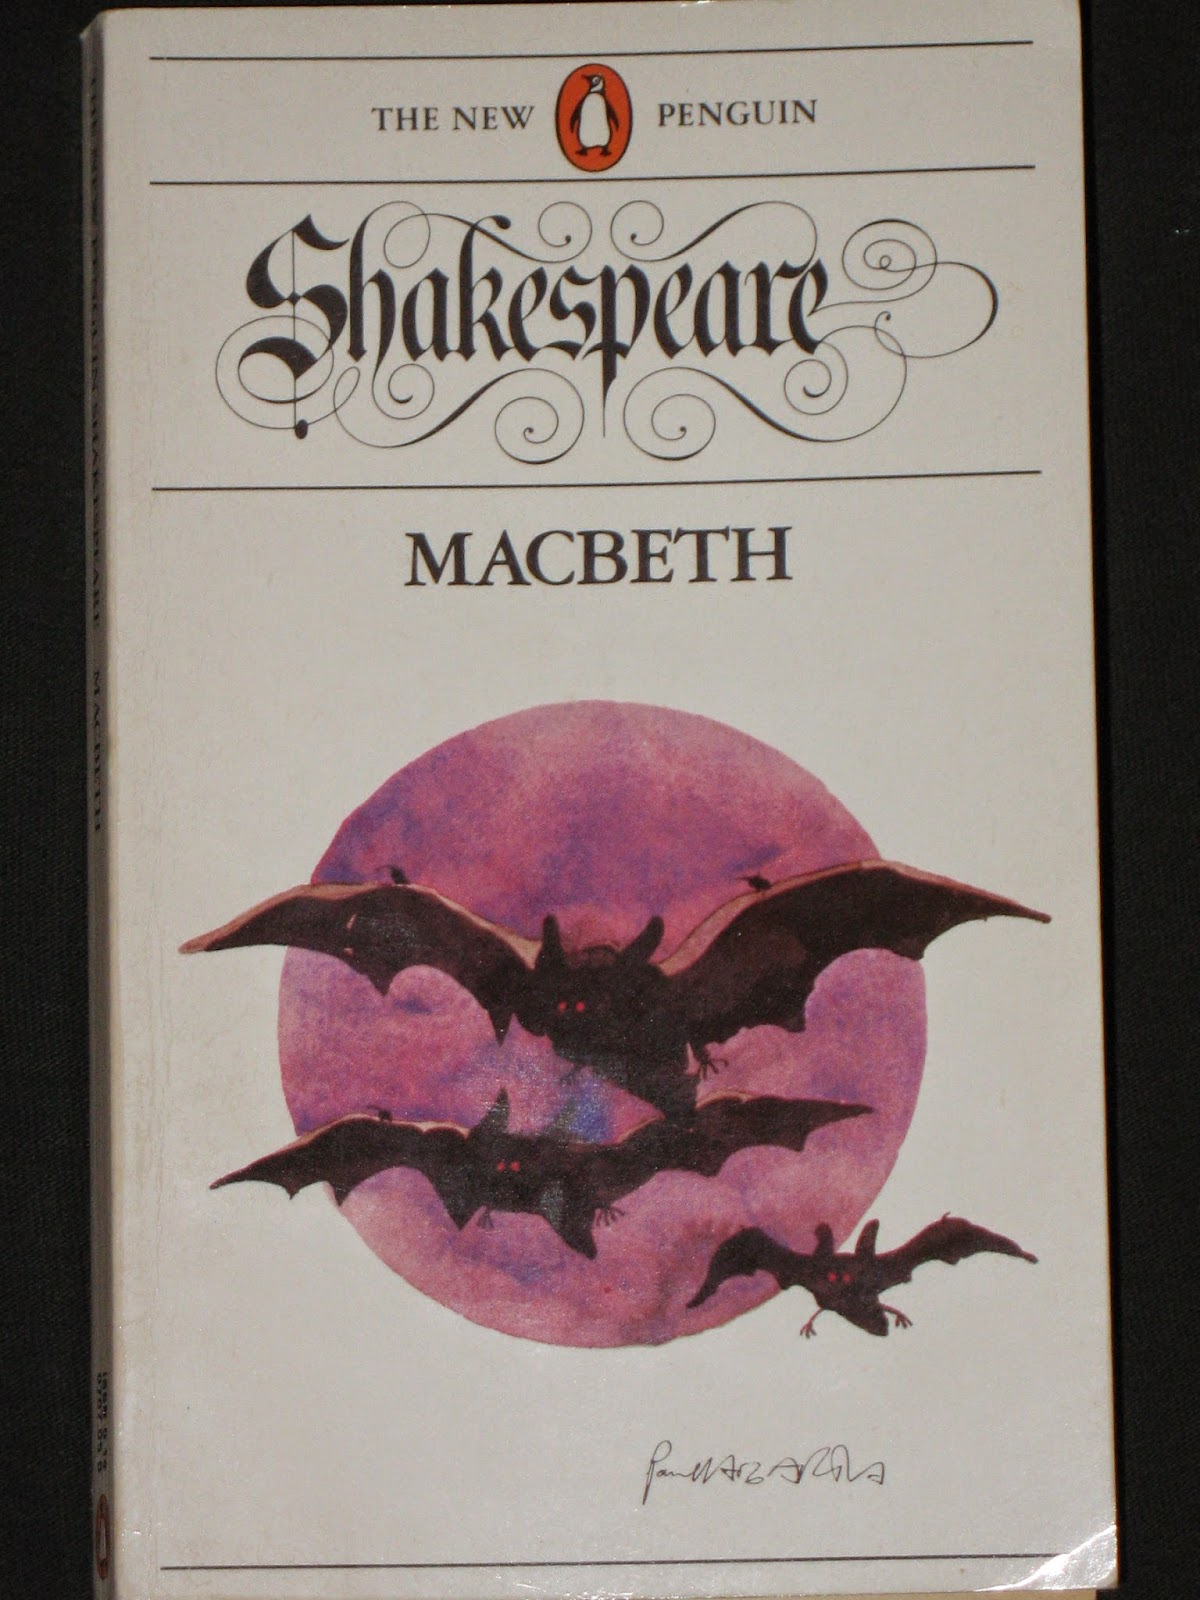 mostly shakespeare but also some occasional nonsense this time around i the new penguin edition which was first published in 1967 my copy of the book is a reprint from 1987 this edition was edited by